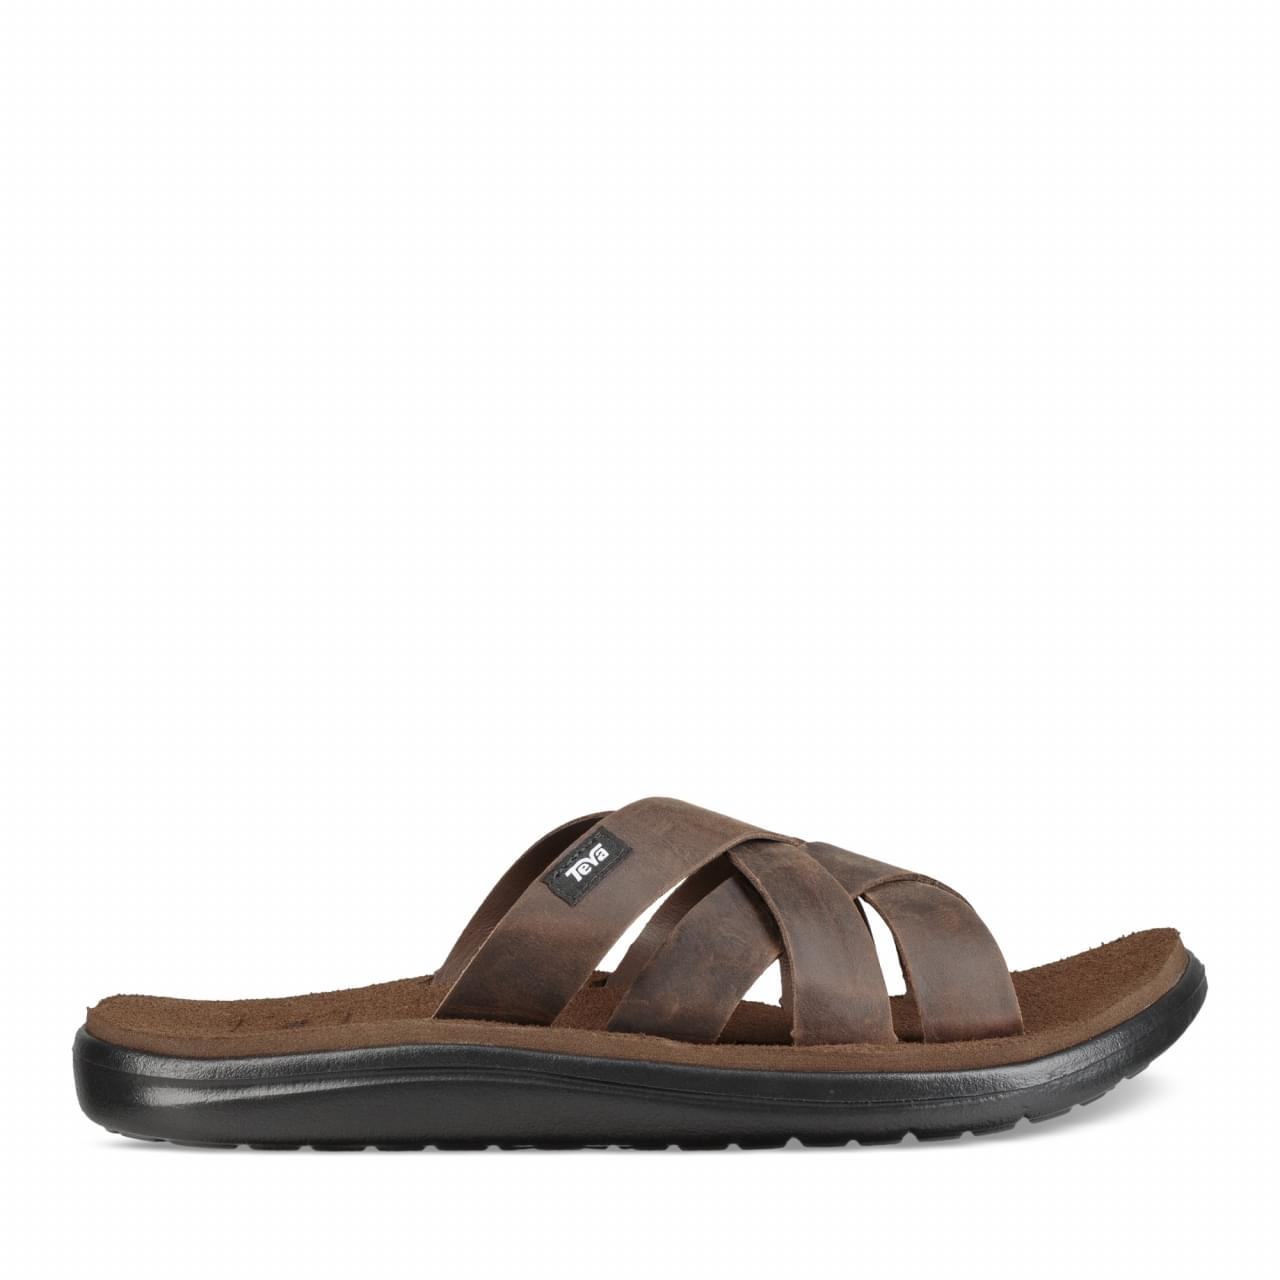 Teva Voya Slide Leather Slipper Heren